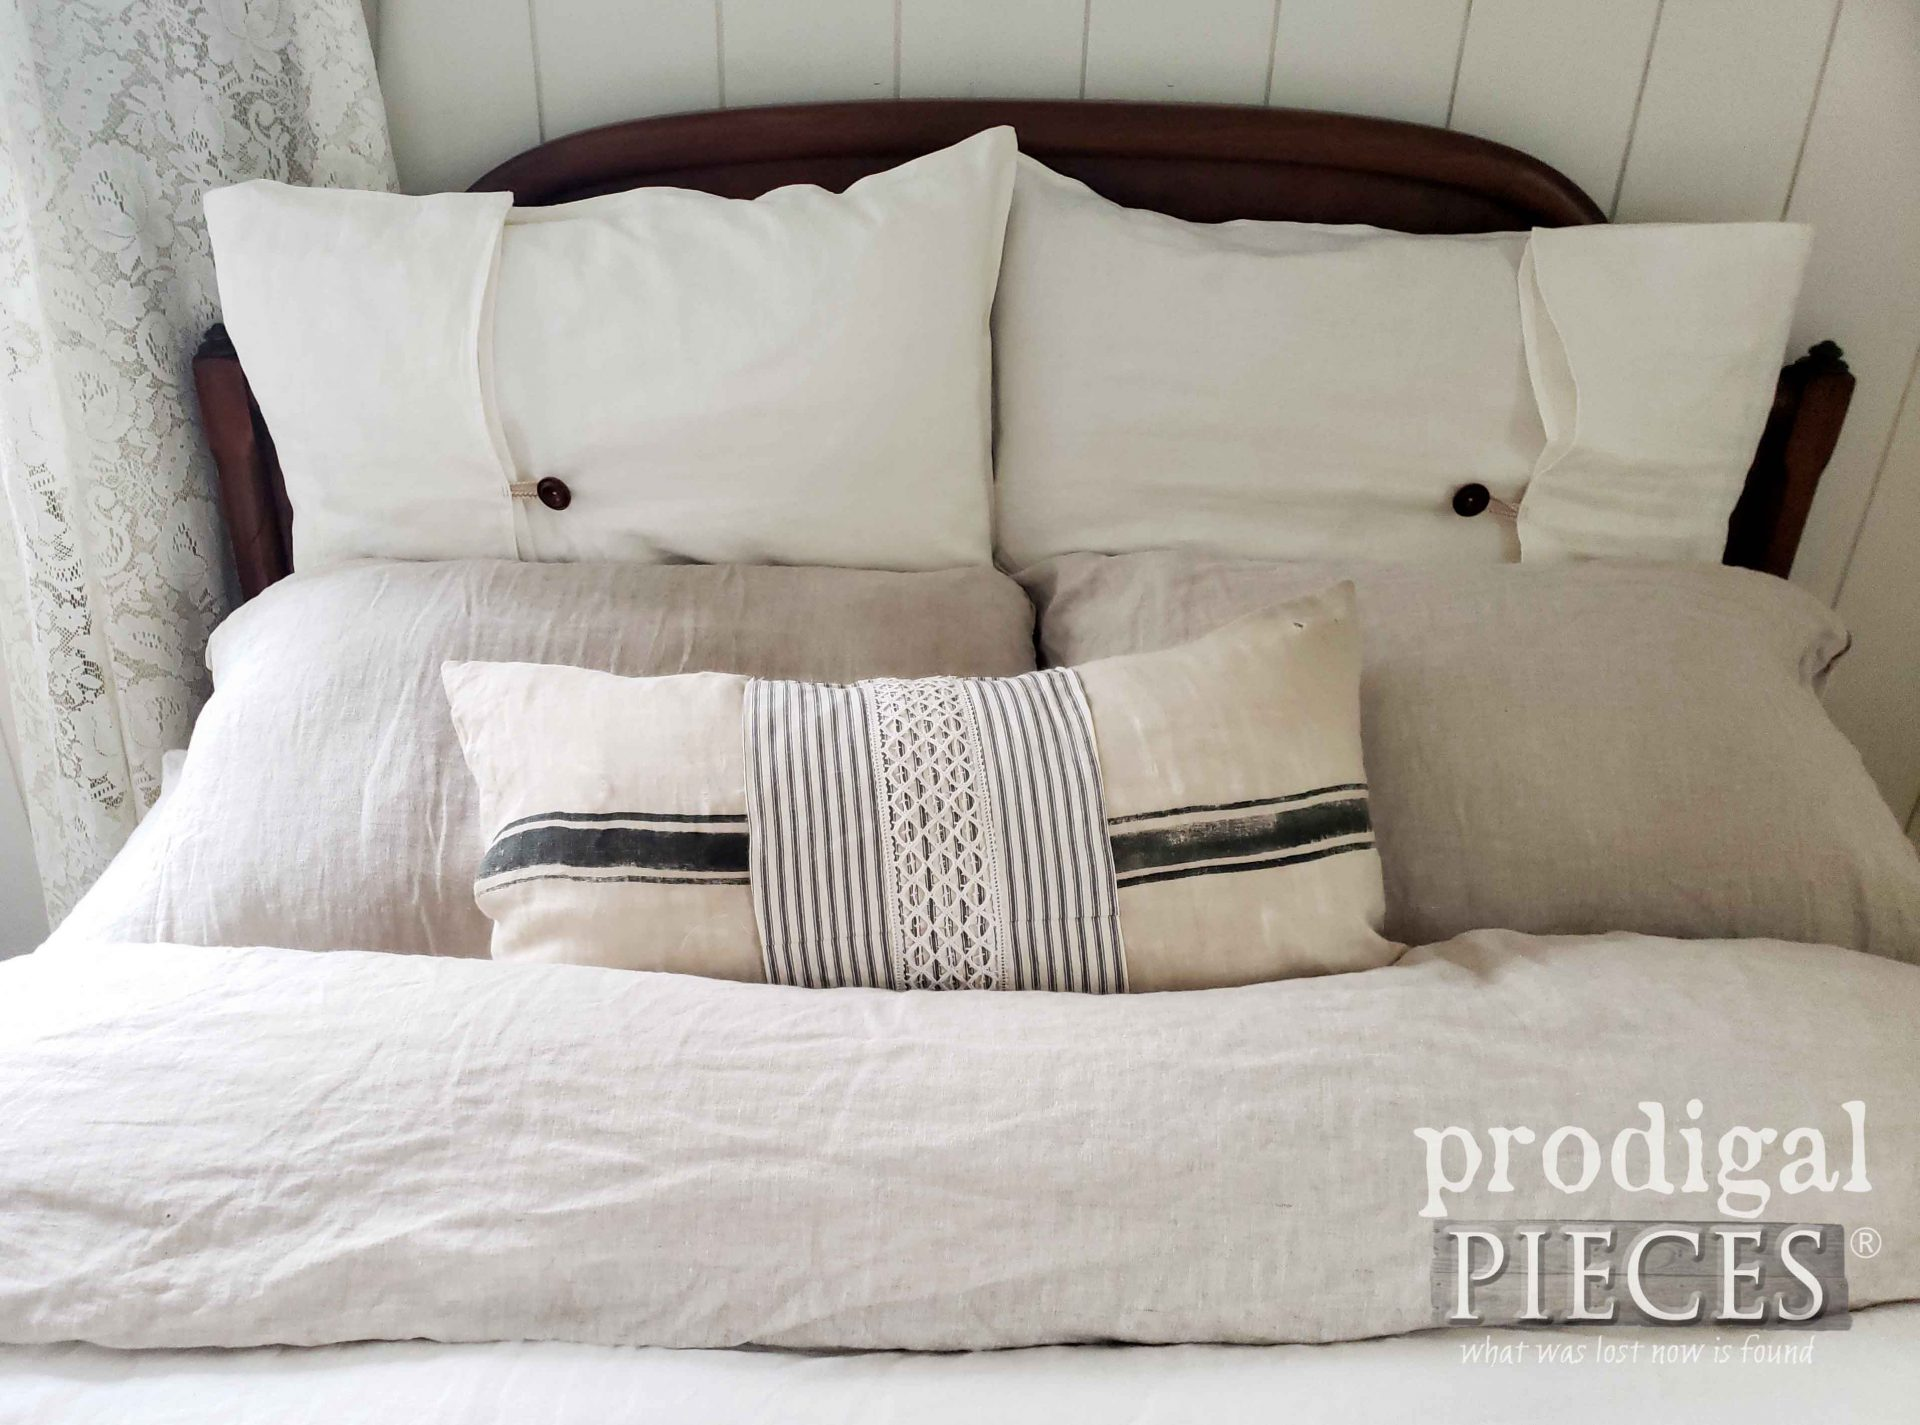 Farmhouse Linen Bed Pillows by Prodigal Pieces | prodigalpieces.com #prodigalpieces